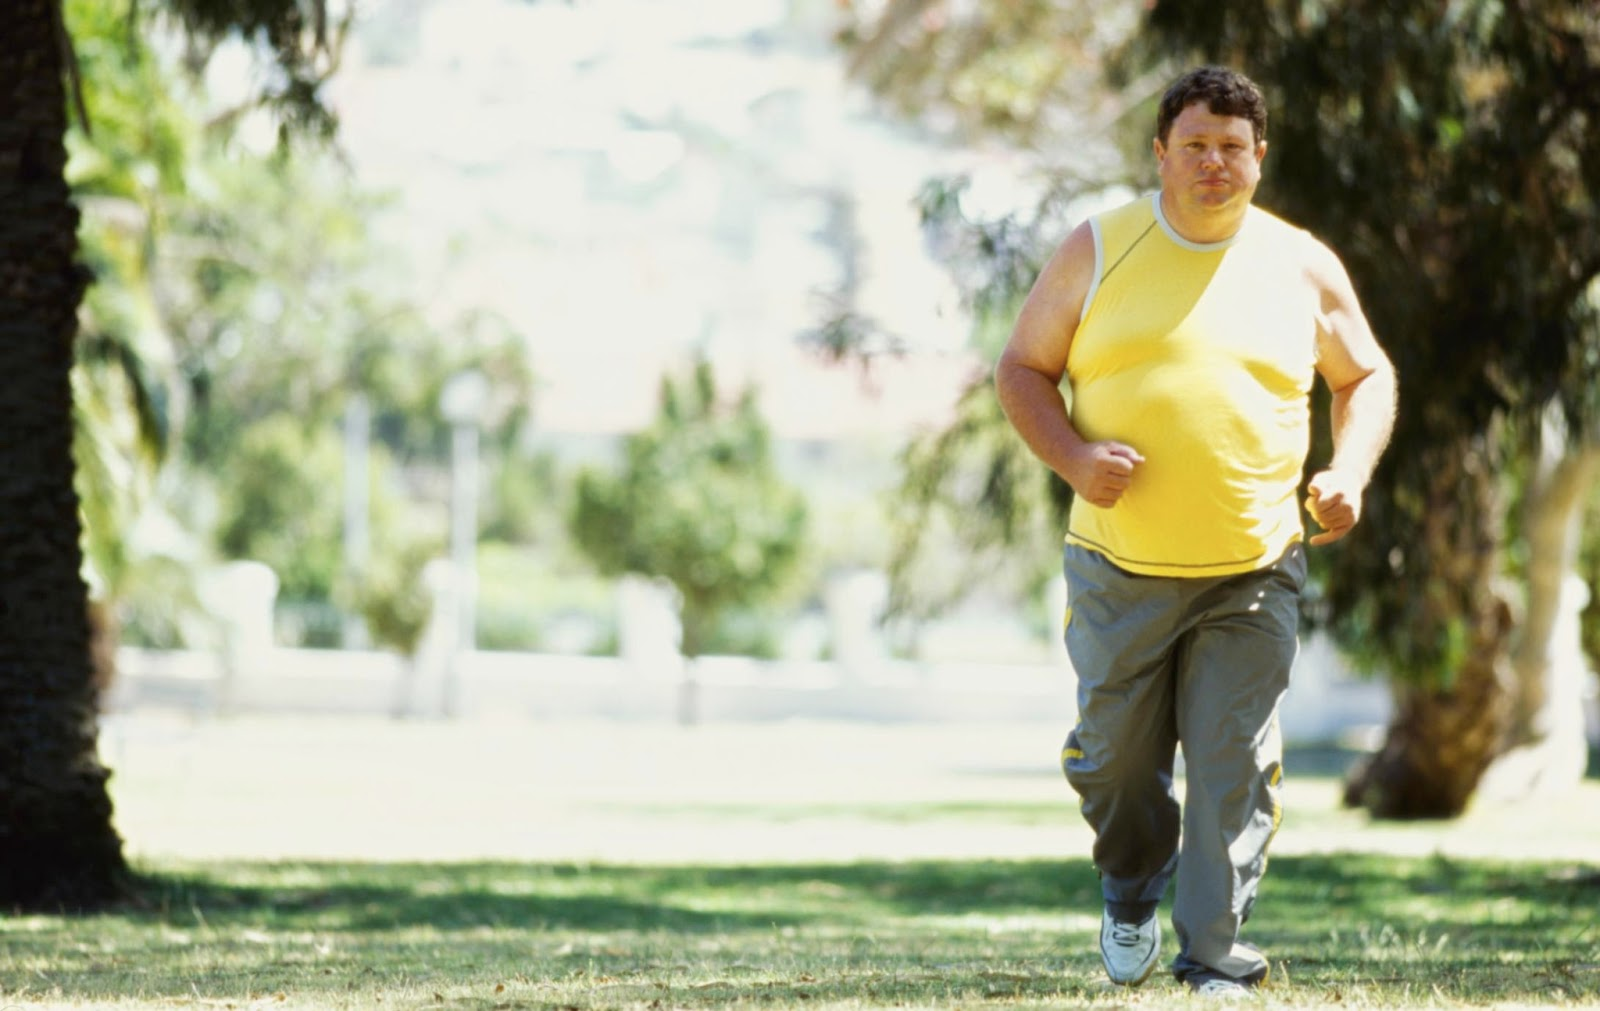 excercise and obesity There is increasing evidence that obesity and copd are inter-related obesity causes copd symptoms to worsen and decreases exercise tolerance.